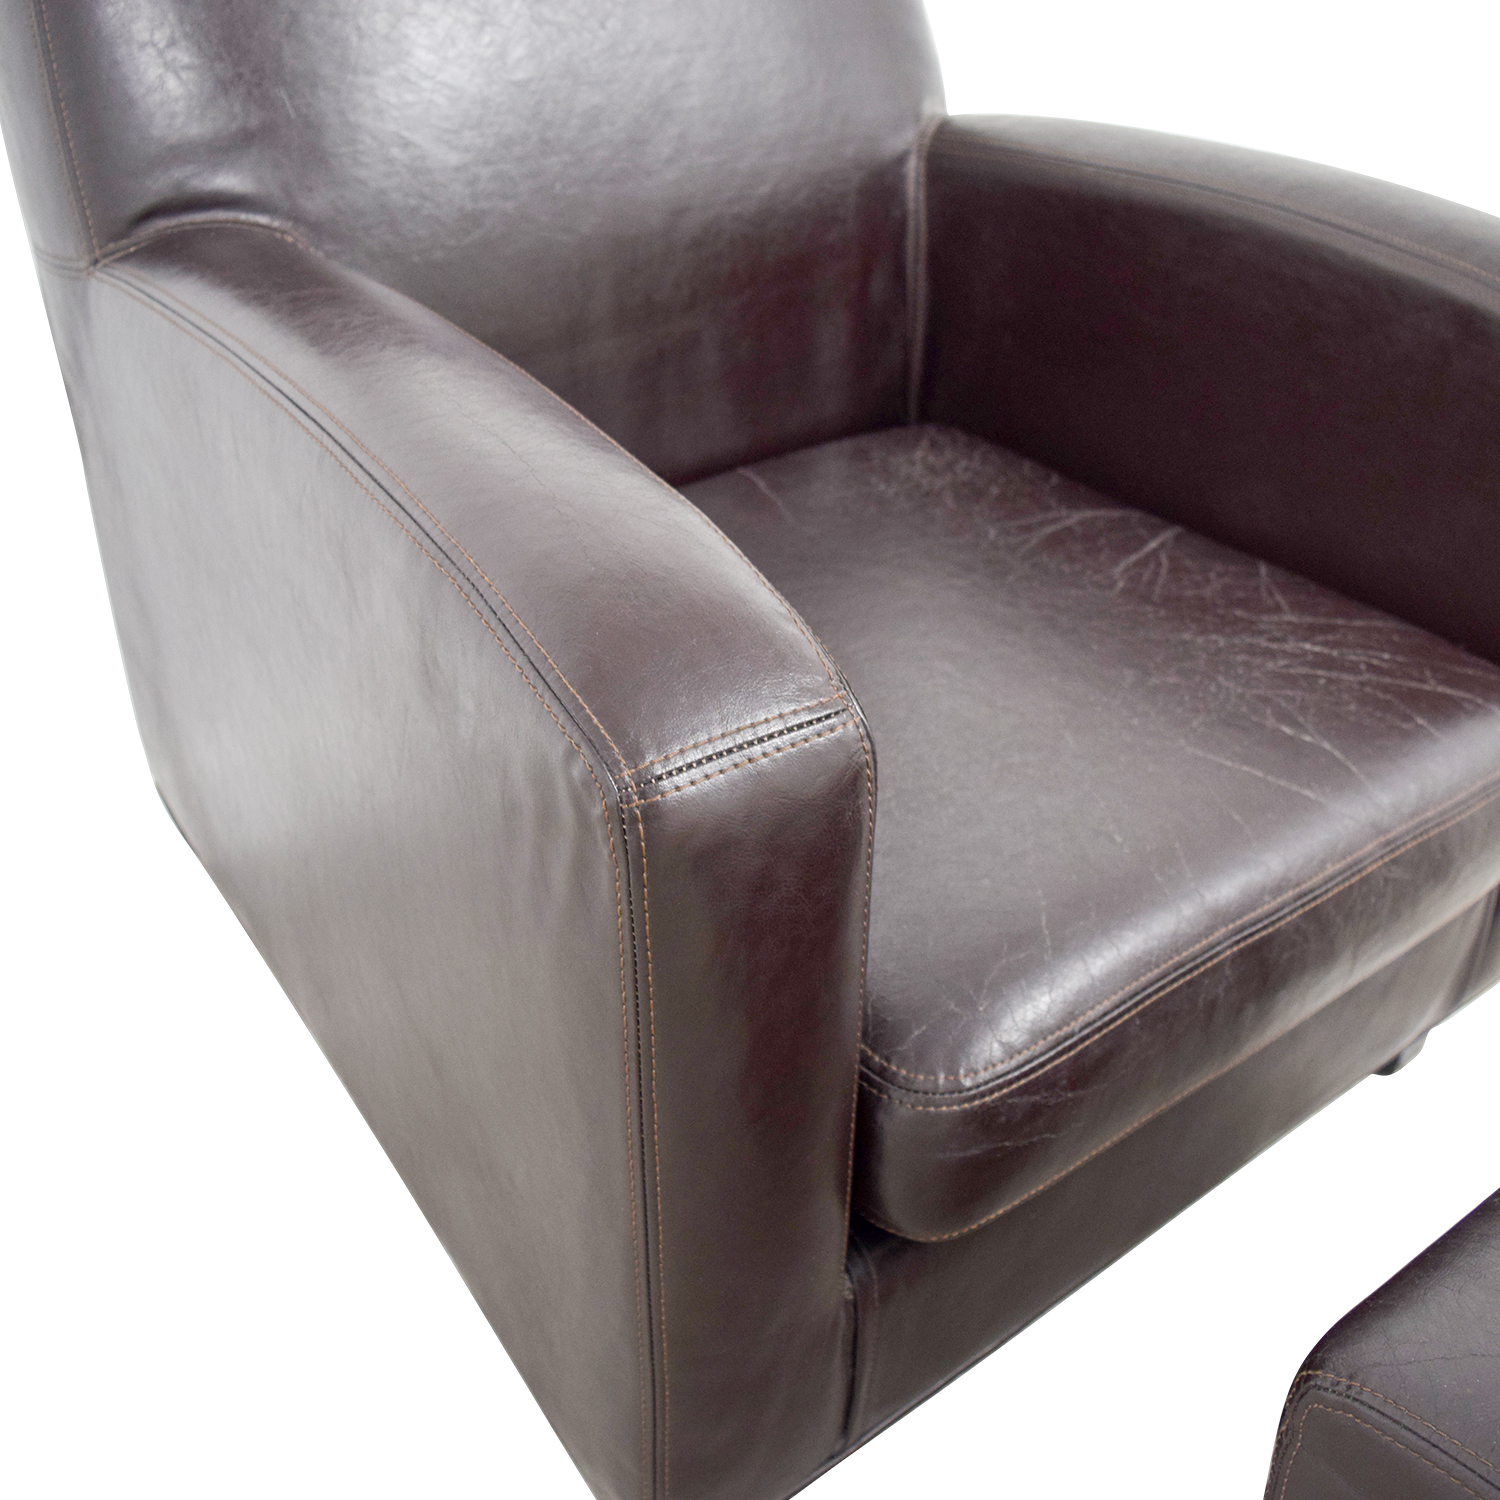 52 Off Ikea Ikea Bonded Brown Leather Chair And Ottoman Chairs  sc 1 th 225 & Ikea Leather Arm Chair   White Leather Armchair Marijarathe